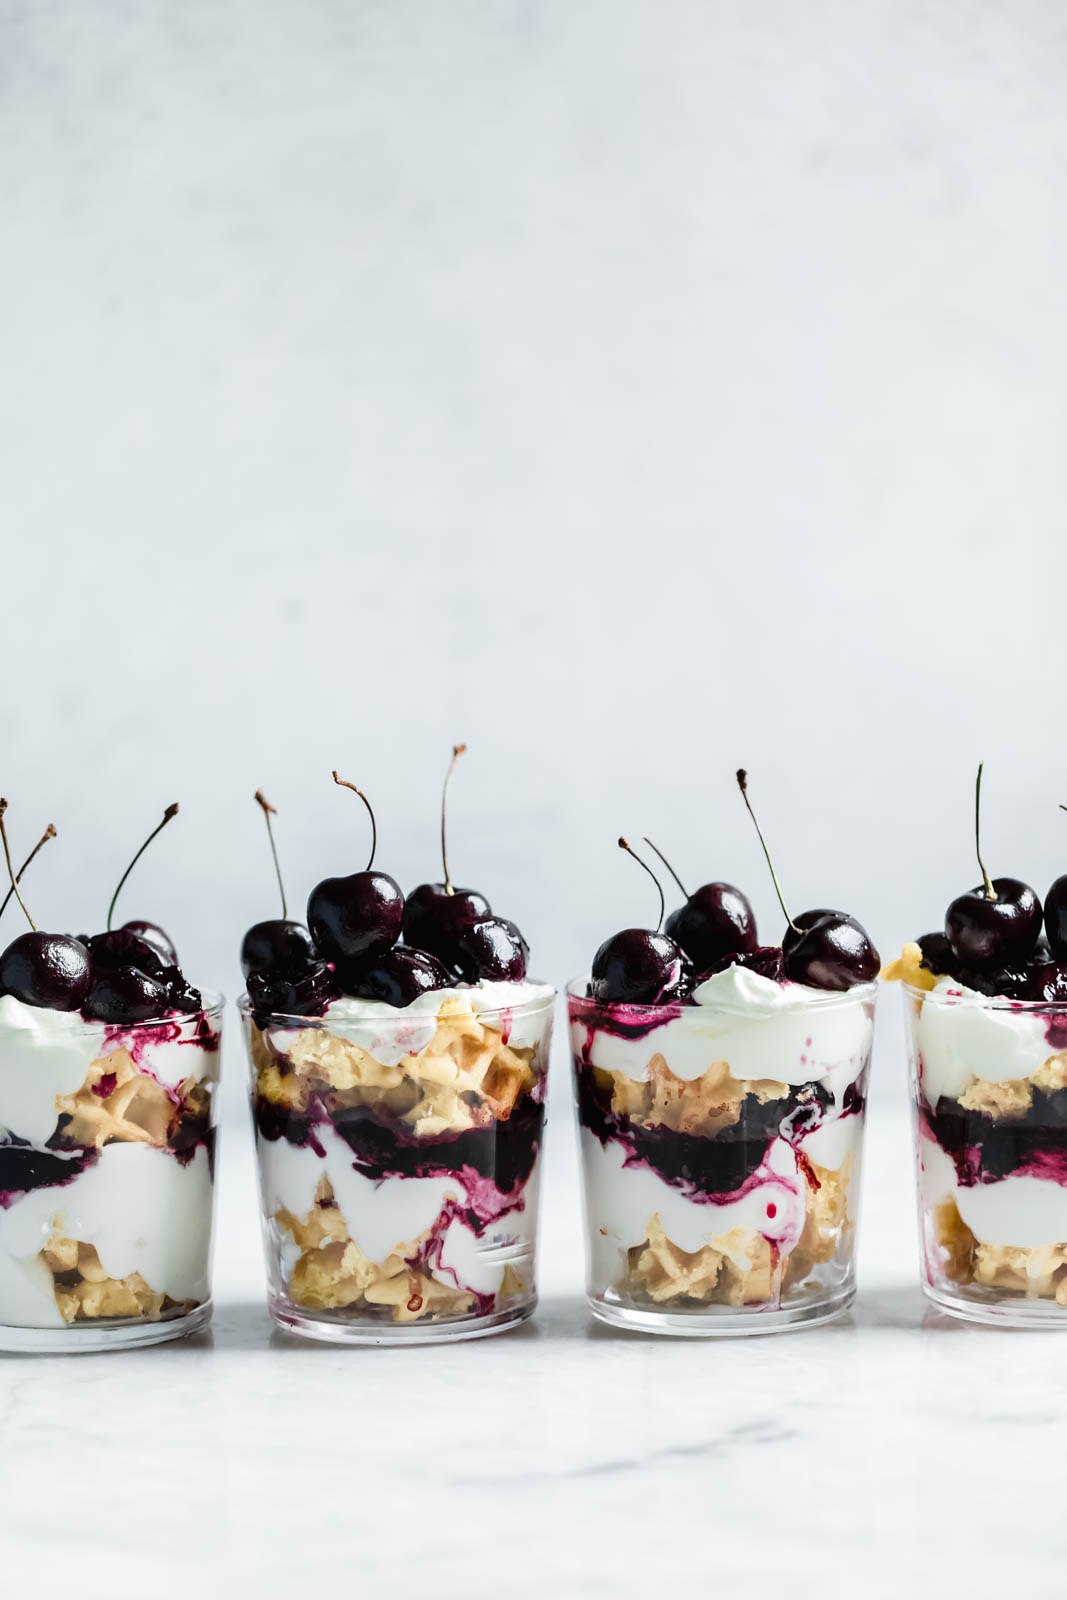 Layers of quick sautéed black cherries, fresh whipped cream, and Belgian waffles make this no-bake waffle parfait a total no-brainer summer dessert.